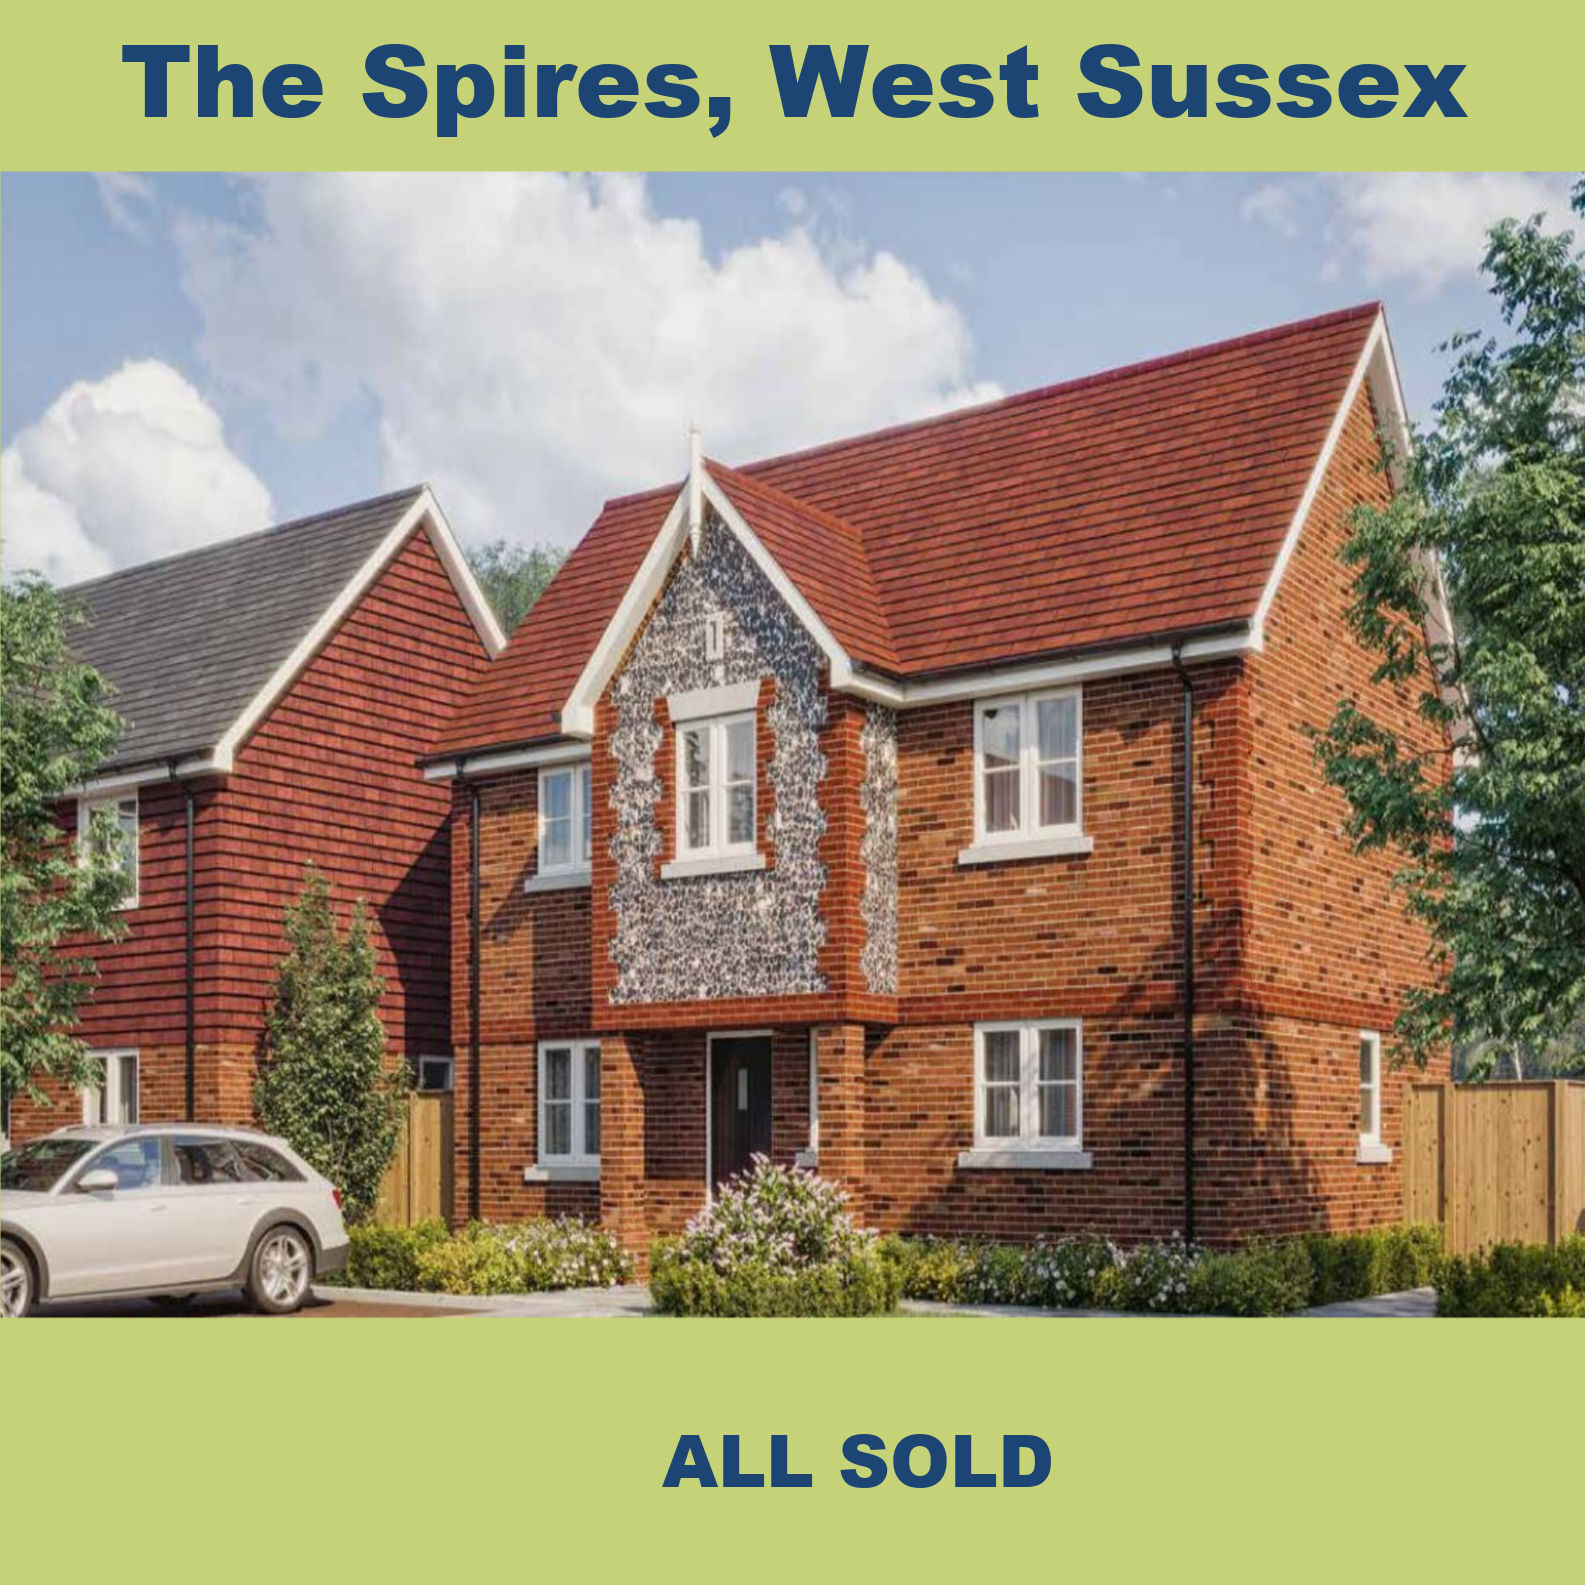 The Spires, West Sussex